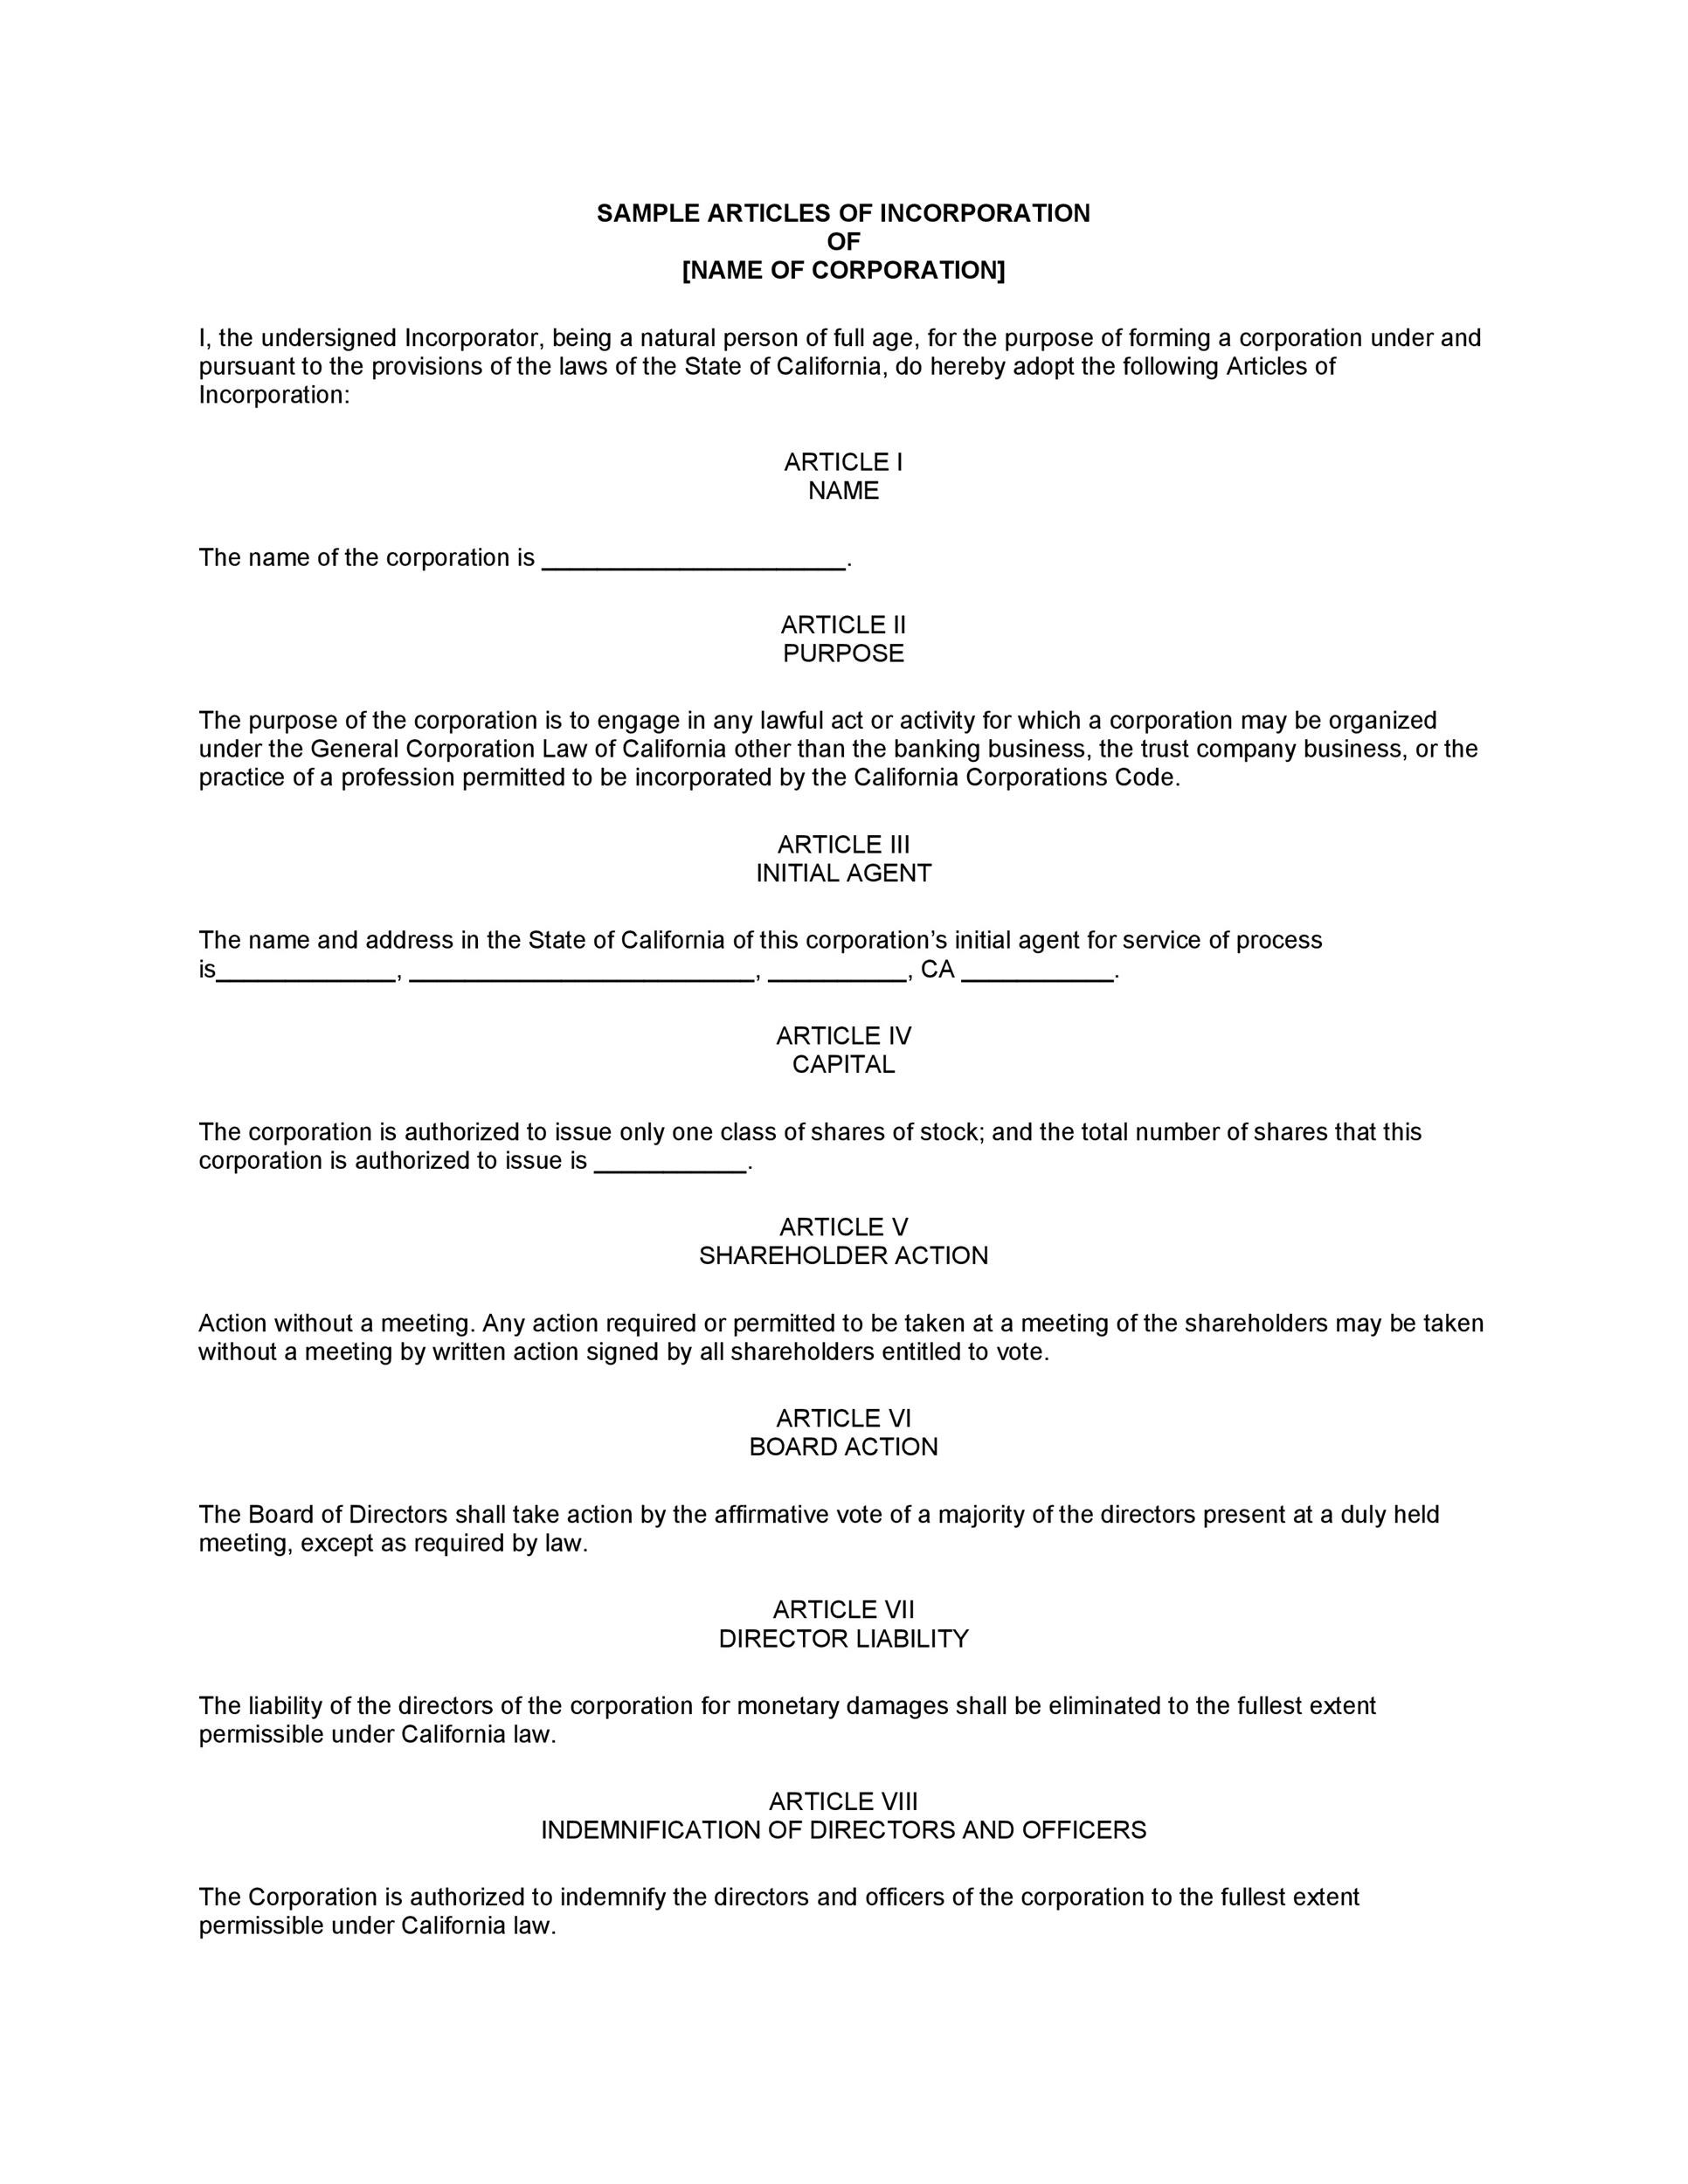 Articles of incorporation 47 templates for any state template lab printable articles of incorporation template 01 altavistaventures